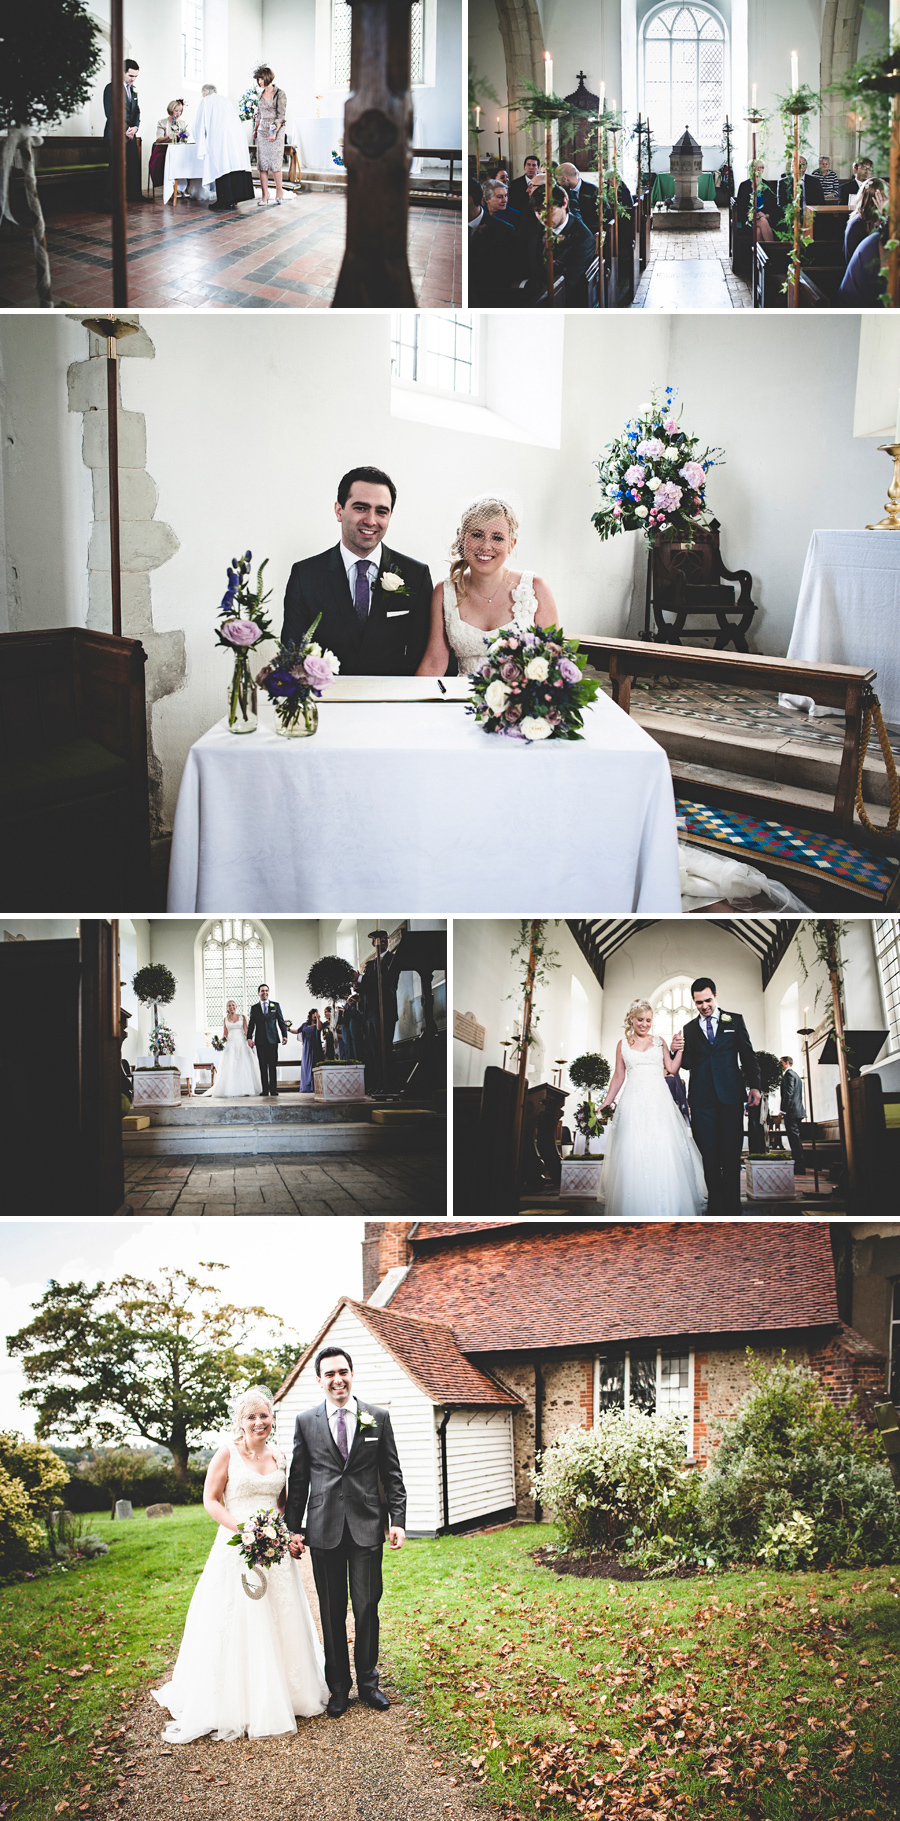 Essex wedding photography: Church ceremony